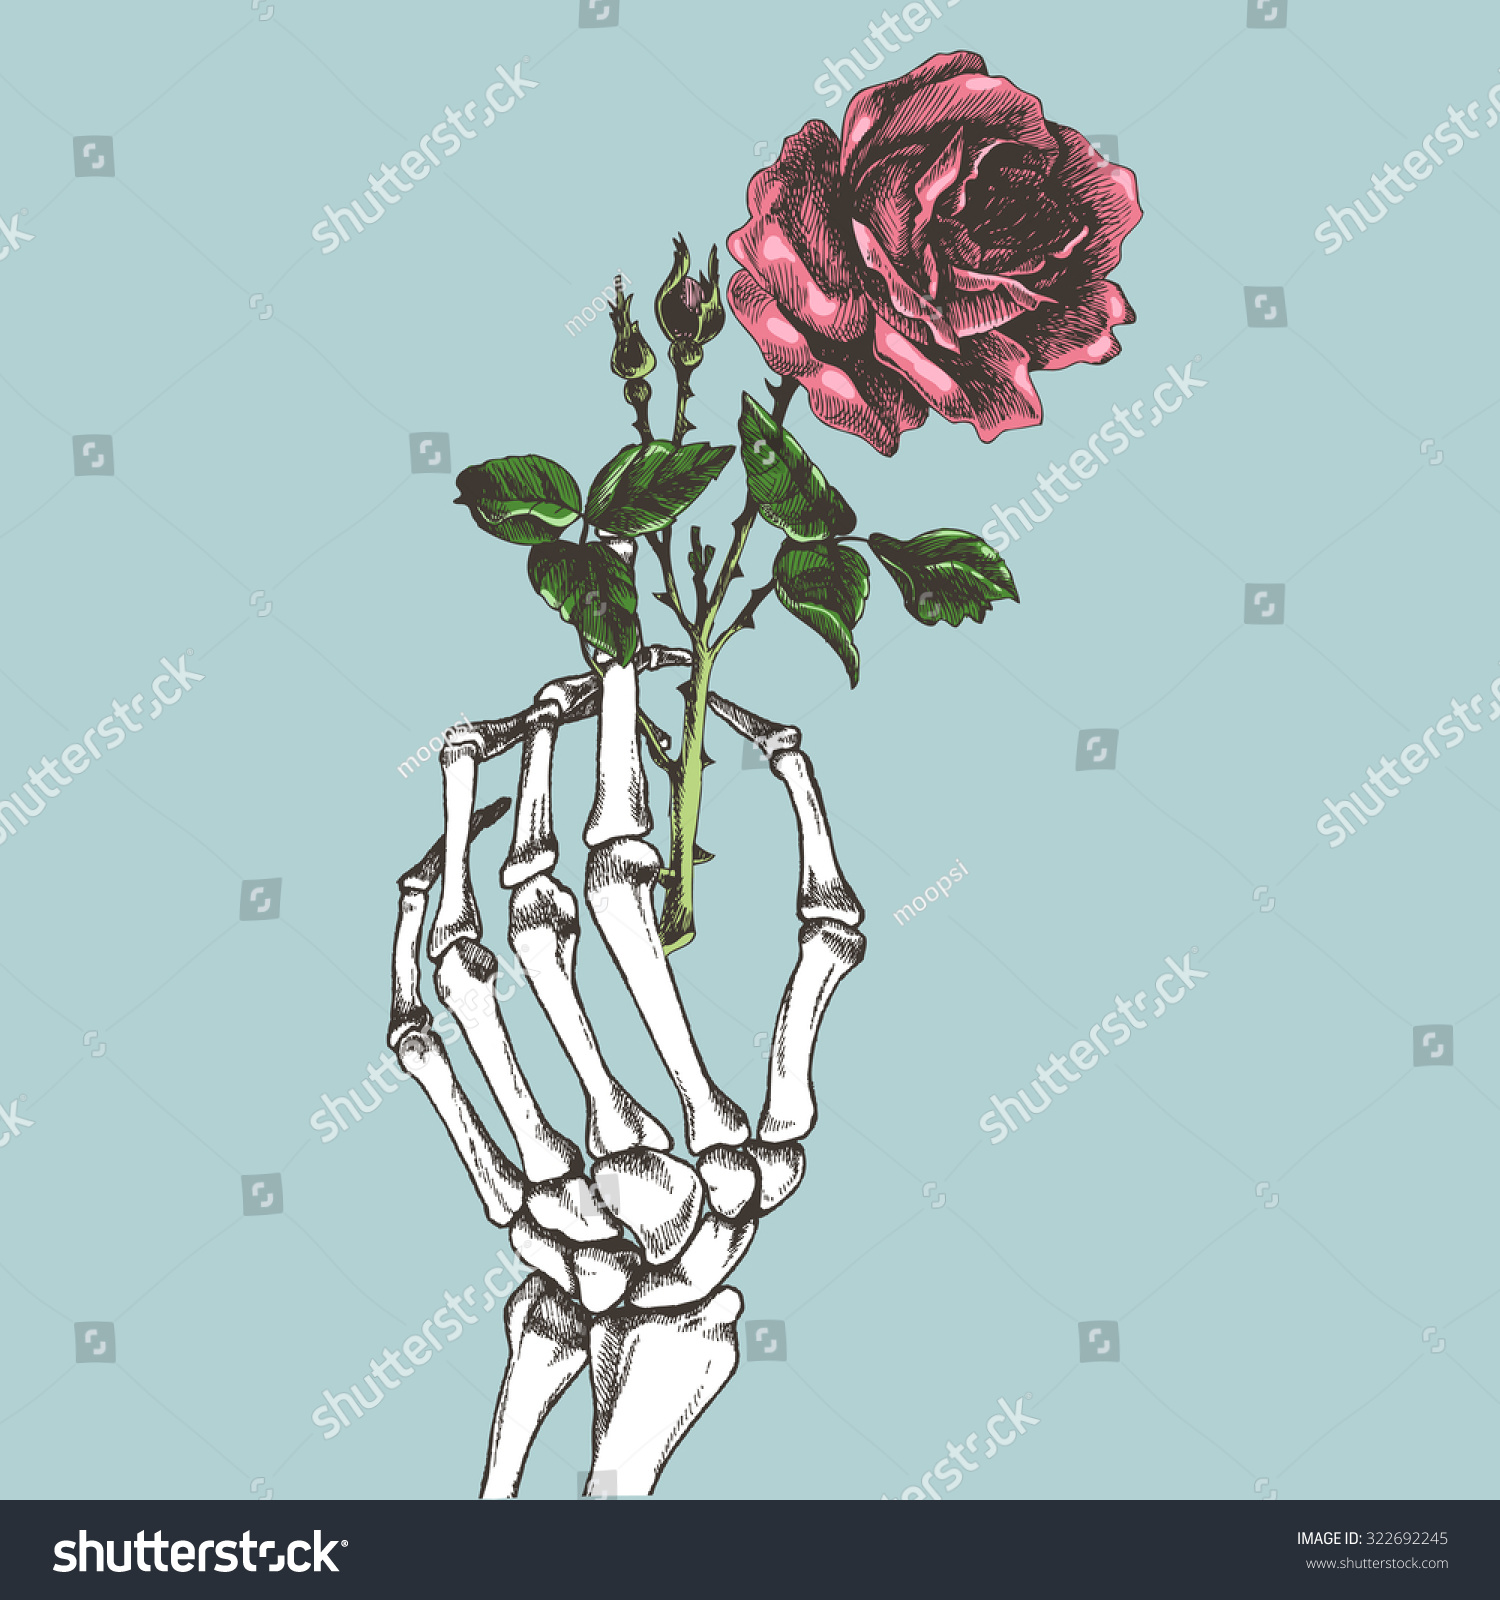 Hand skeleton with flower vector illustration for Hand holding a rose drawing